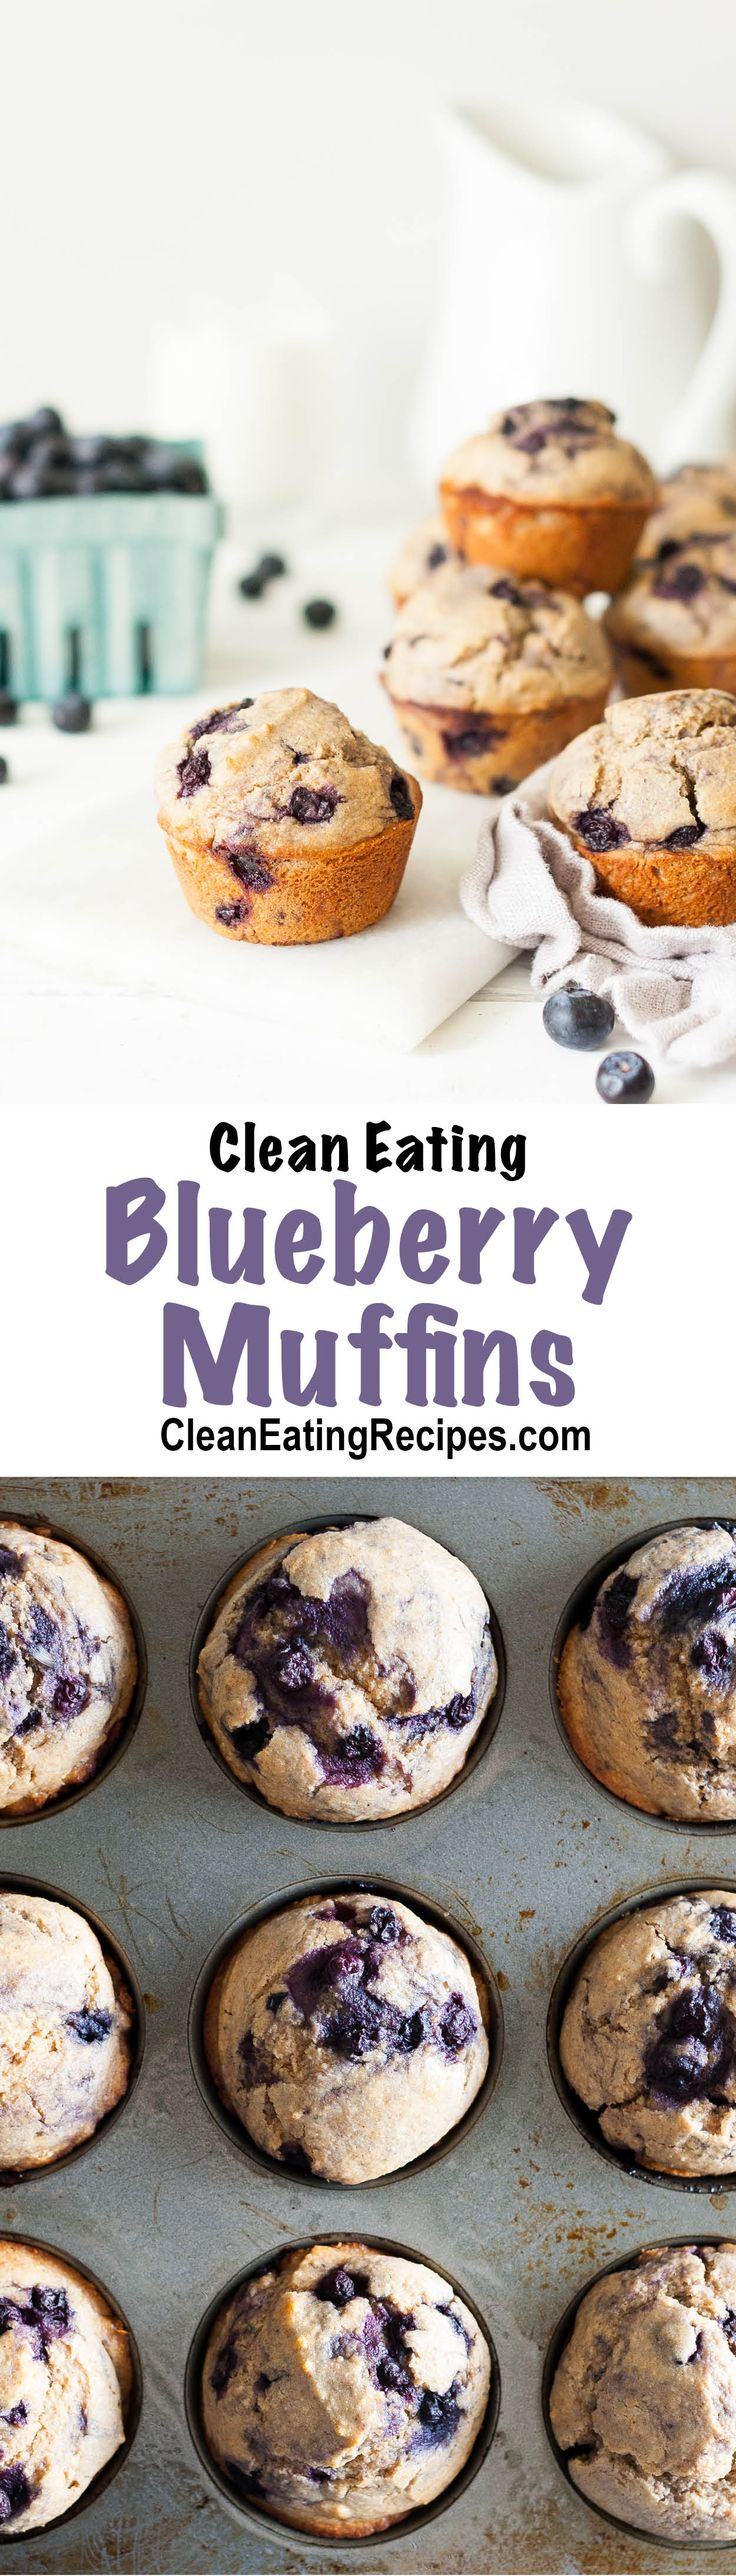 These Clean Eating blueberry muffins are made with whole wheat flour, oat flour and honey - so you can feel good eating them.